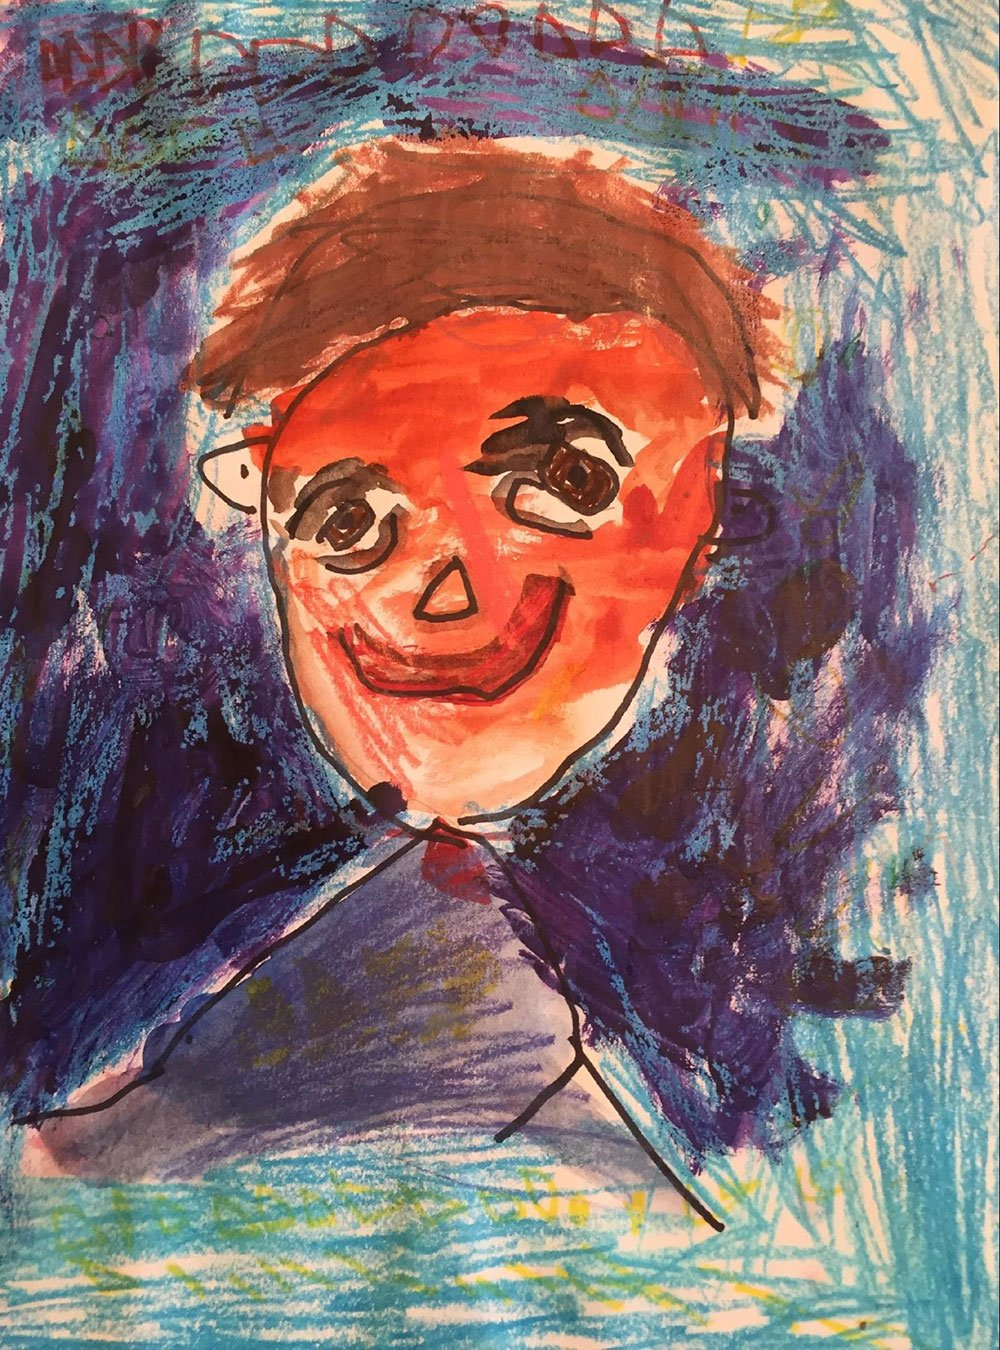 Jonah, A Self-Portrait by Jonah S.